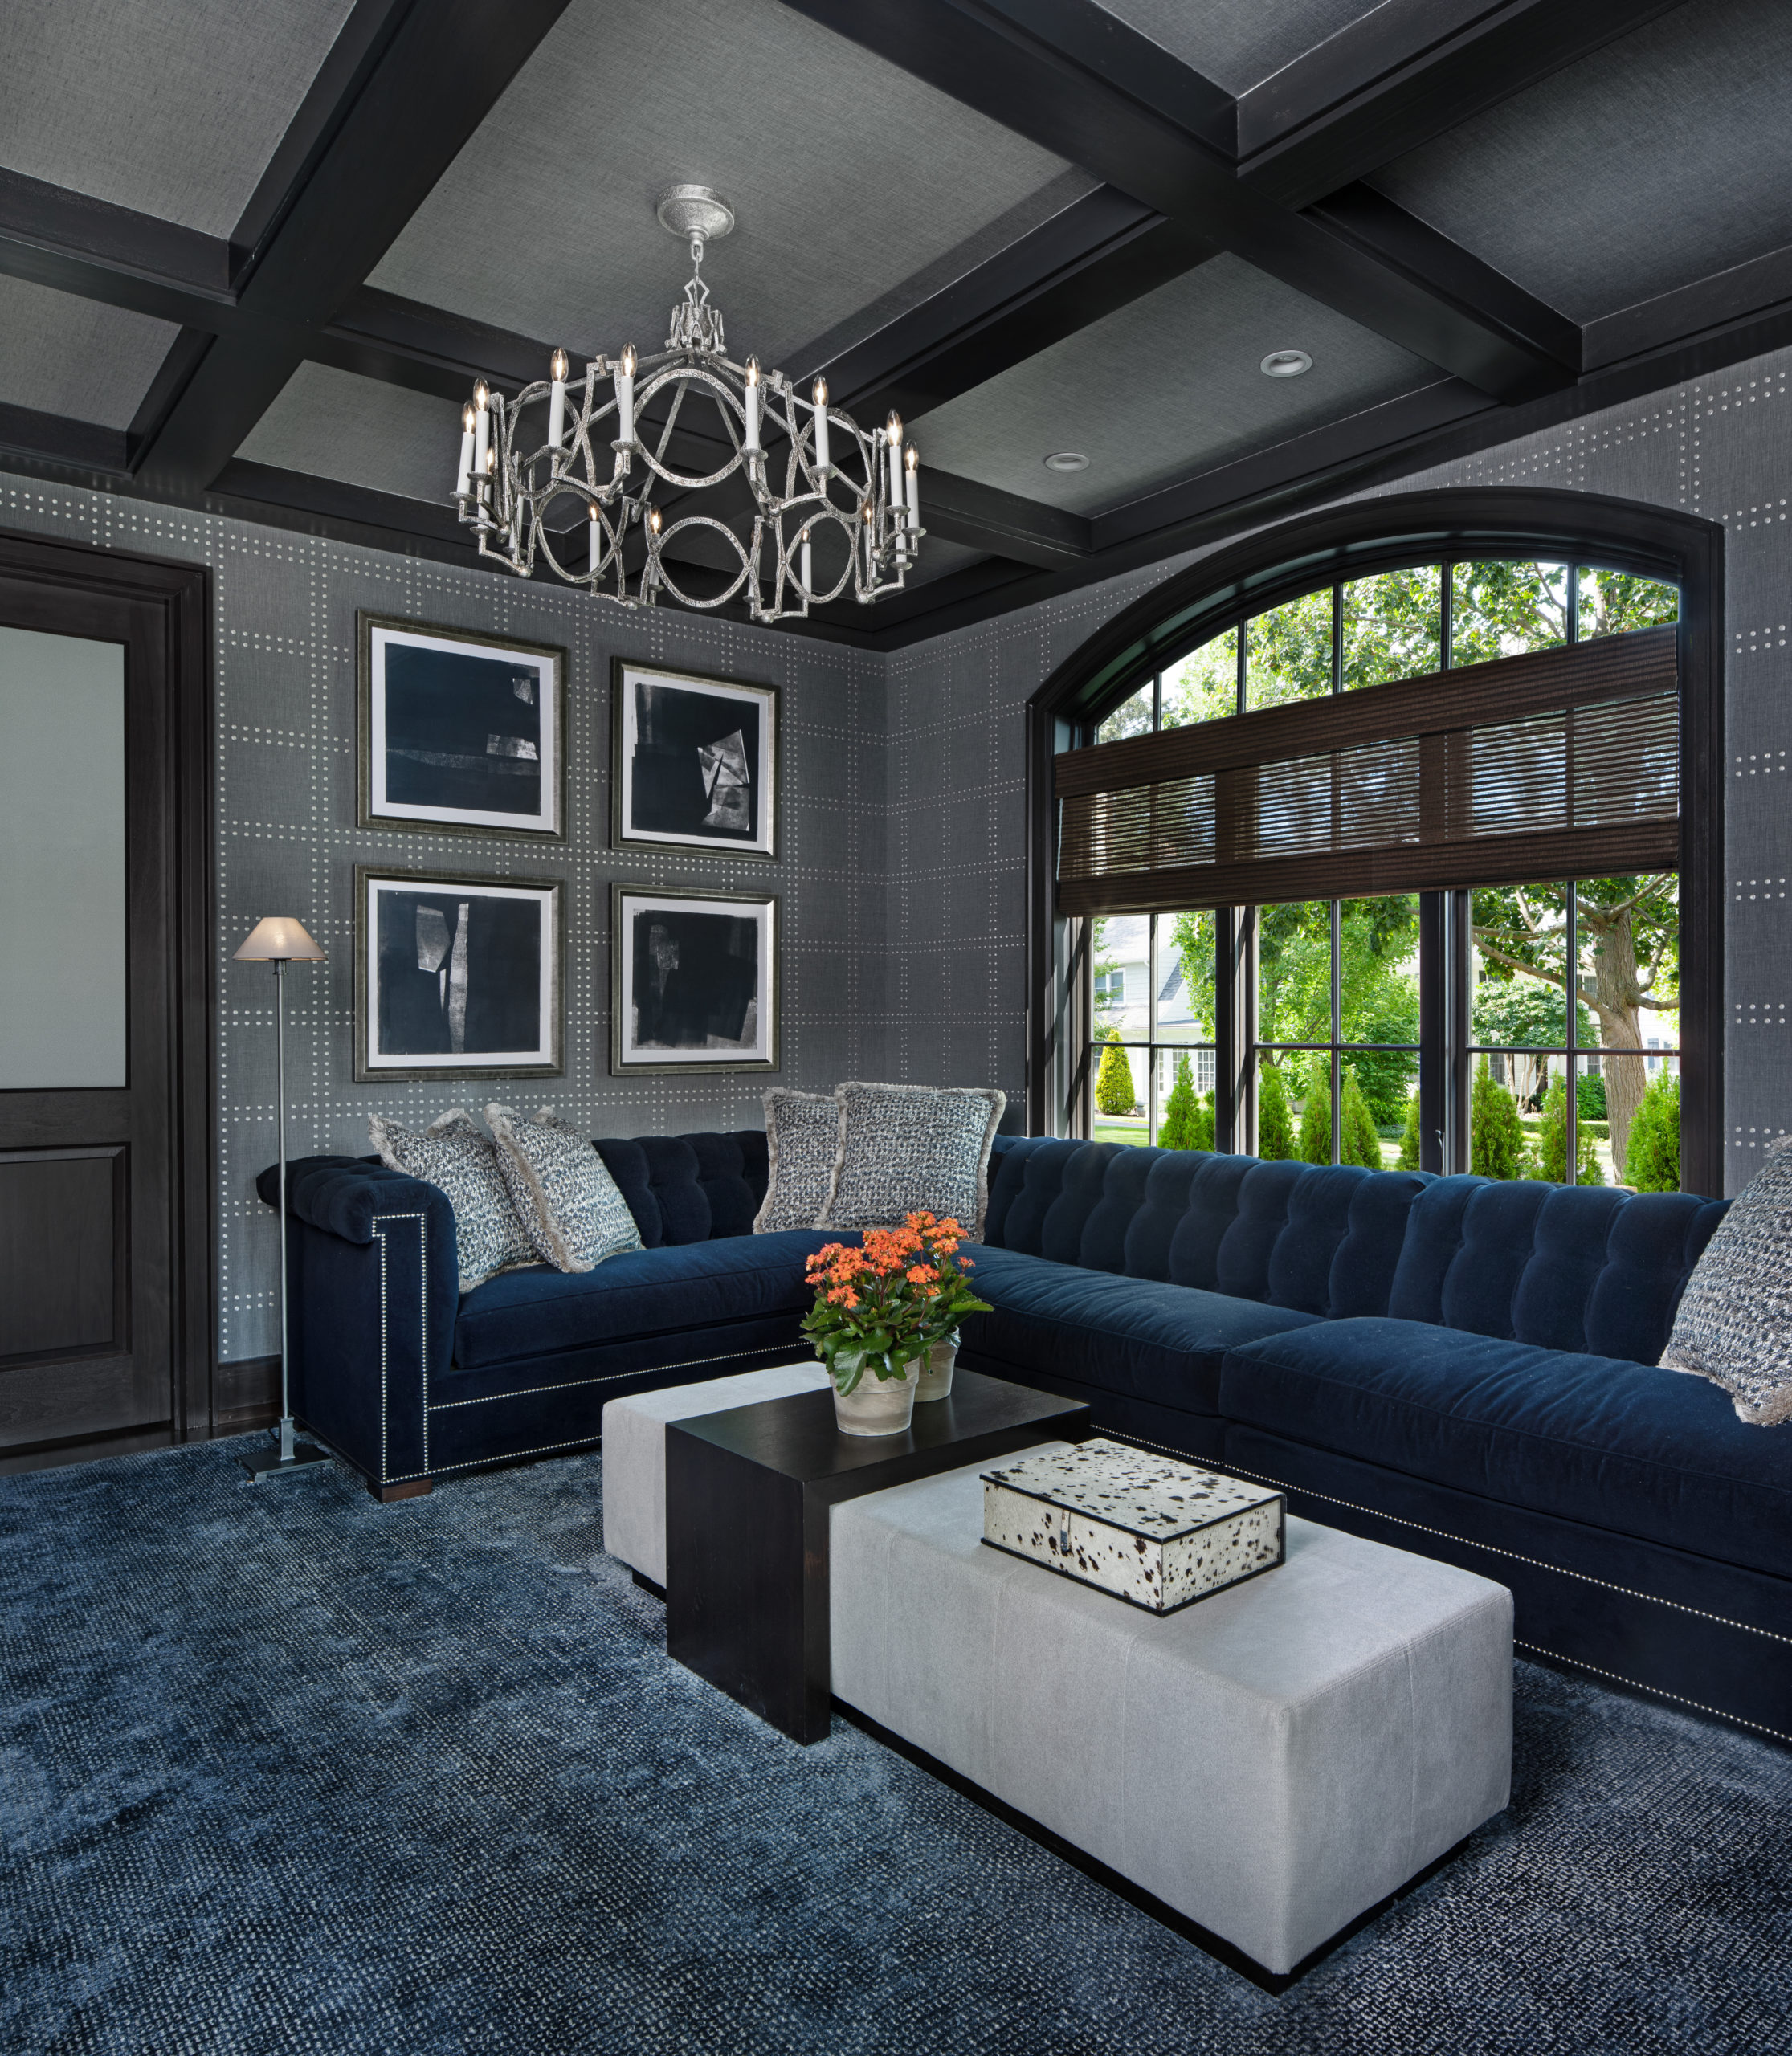 Classic Blue Is Pantone S 2020 Color Of The Year The Jewish News,Ikea Customer Service Email Address Us